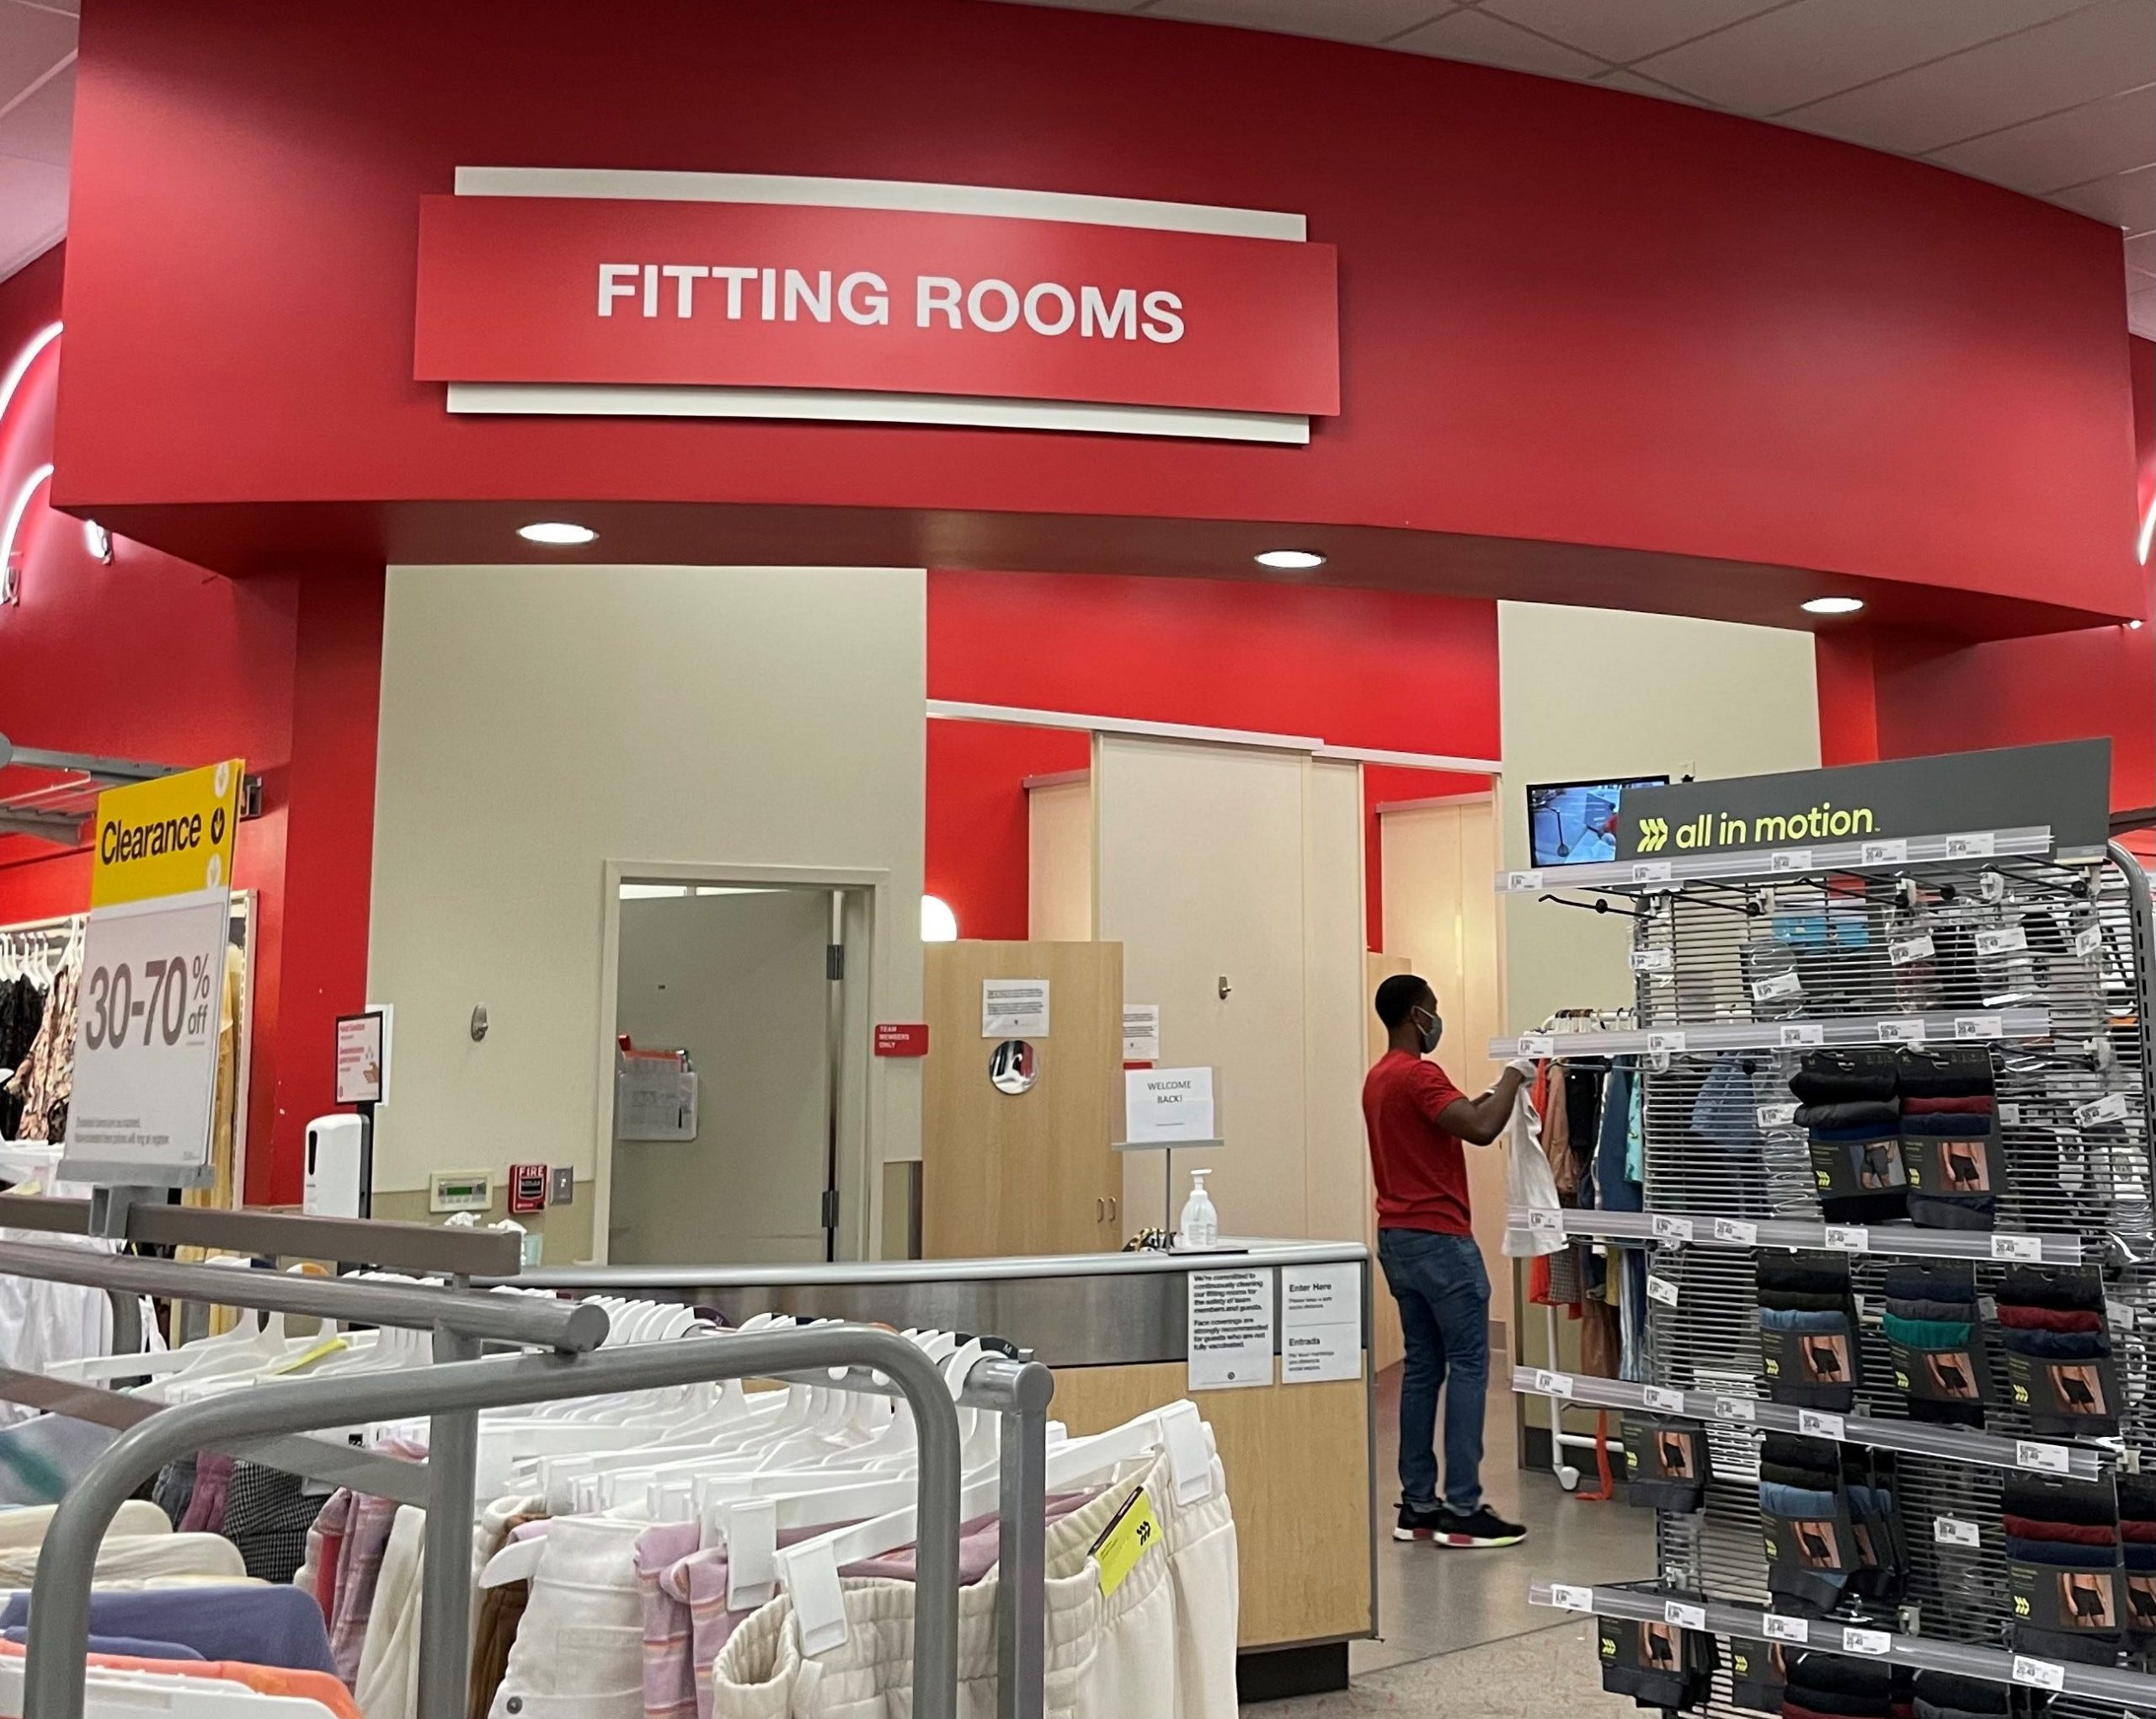 Target is reopening fitting rooms after keeping them closed more than a year amid COVID-19